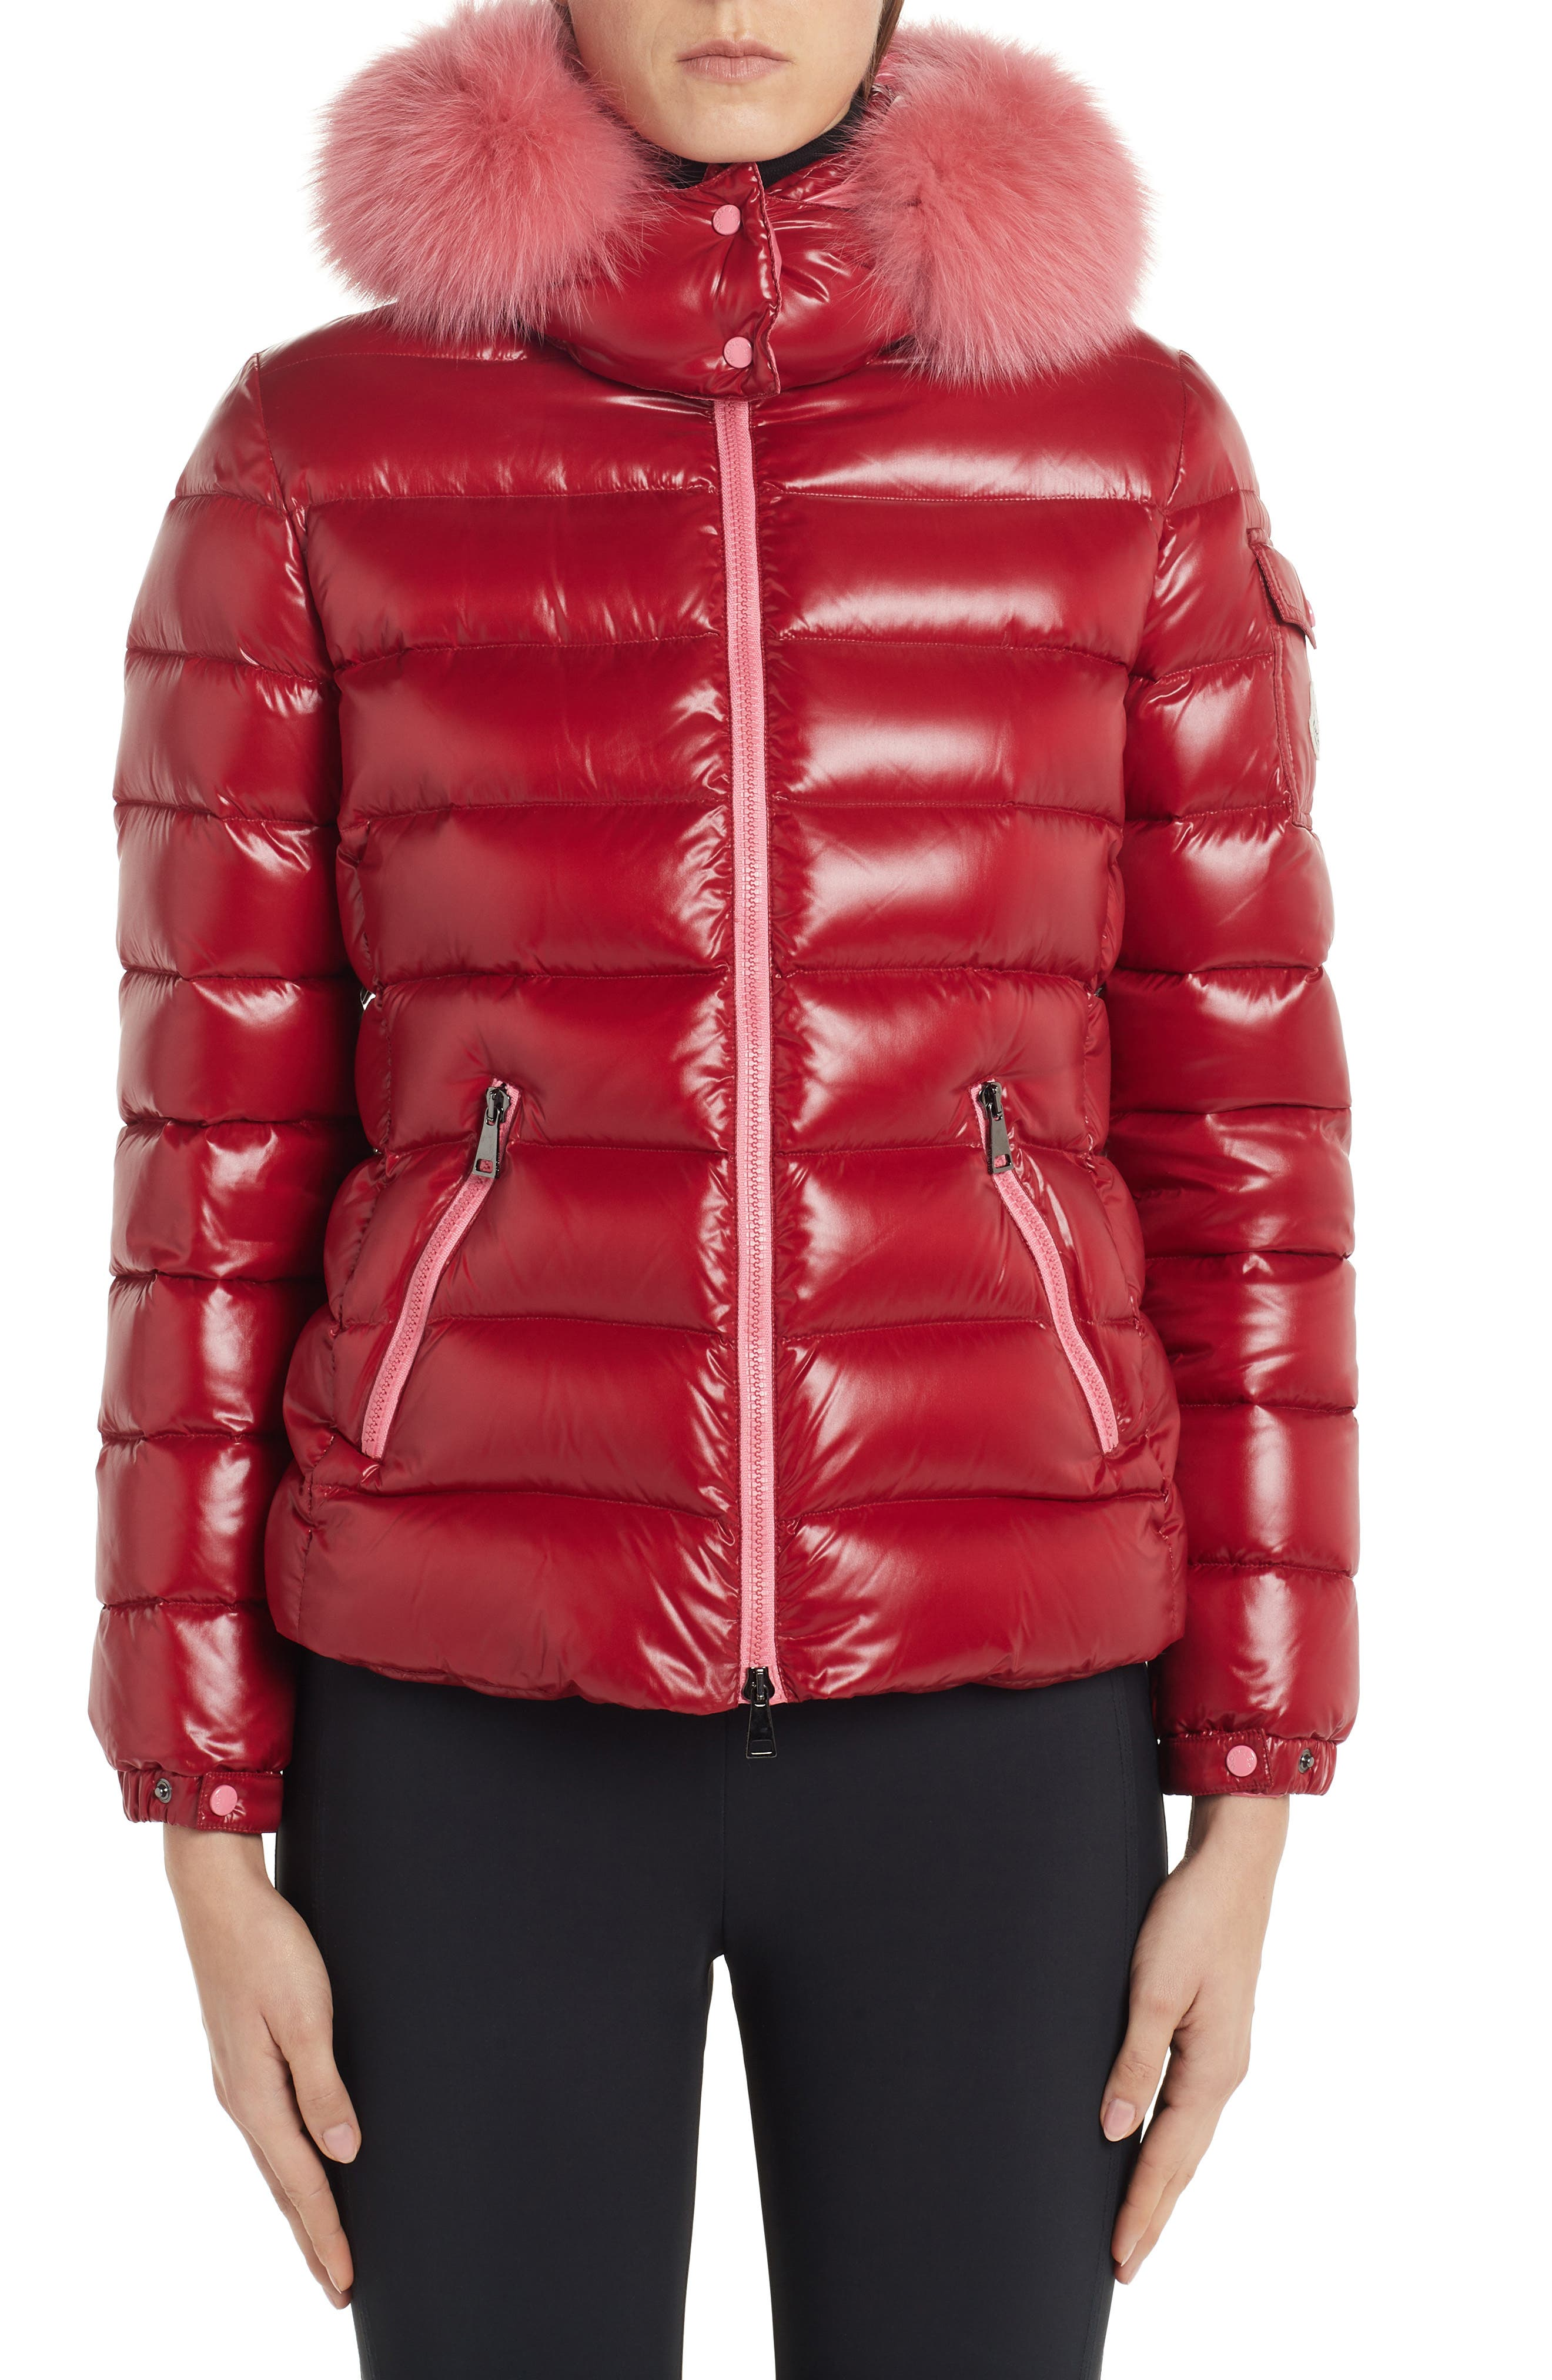 Moncler Badyfur Quilted Down Puffer Jacket With Removable Genuine Fox Fur Trim, Red